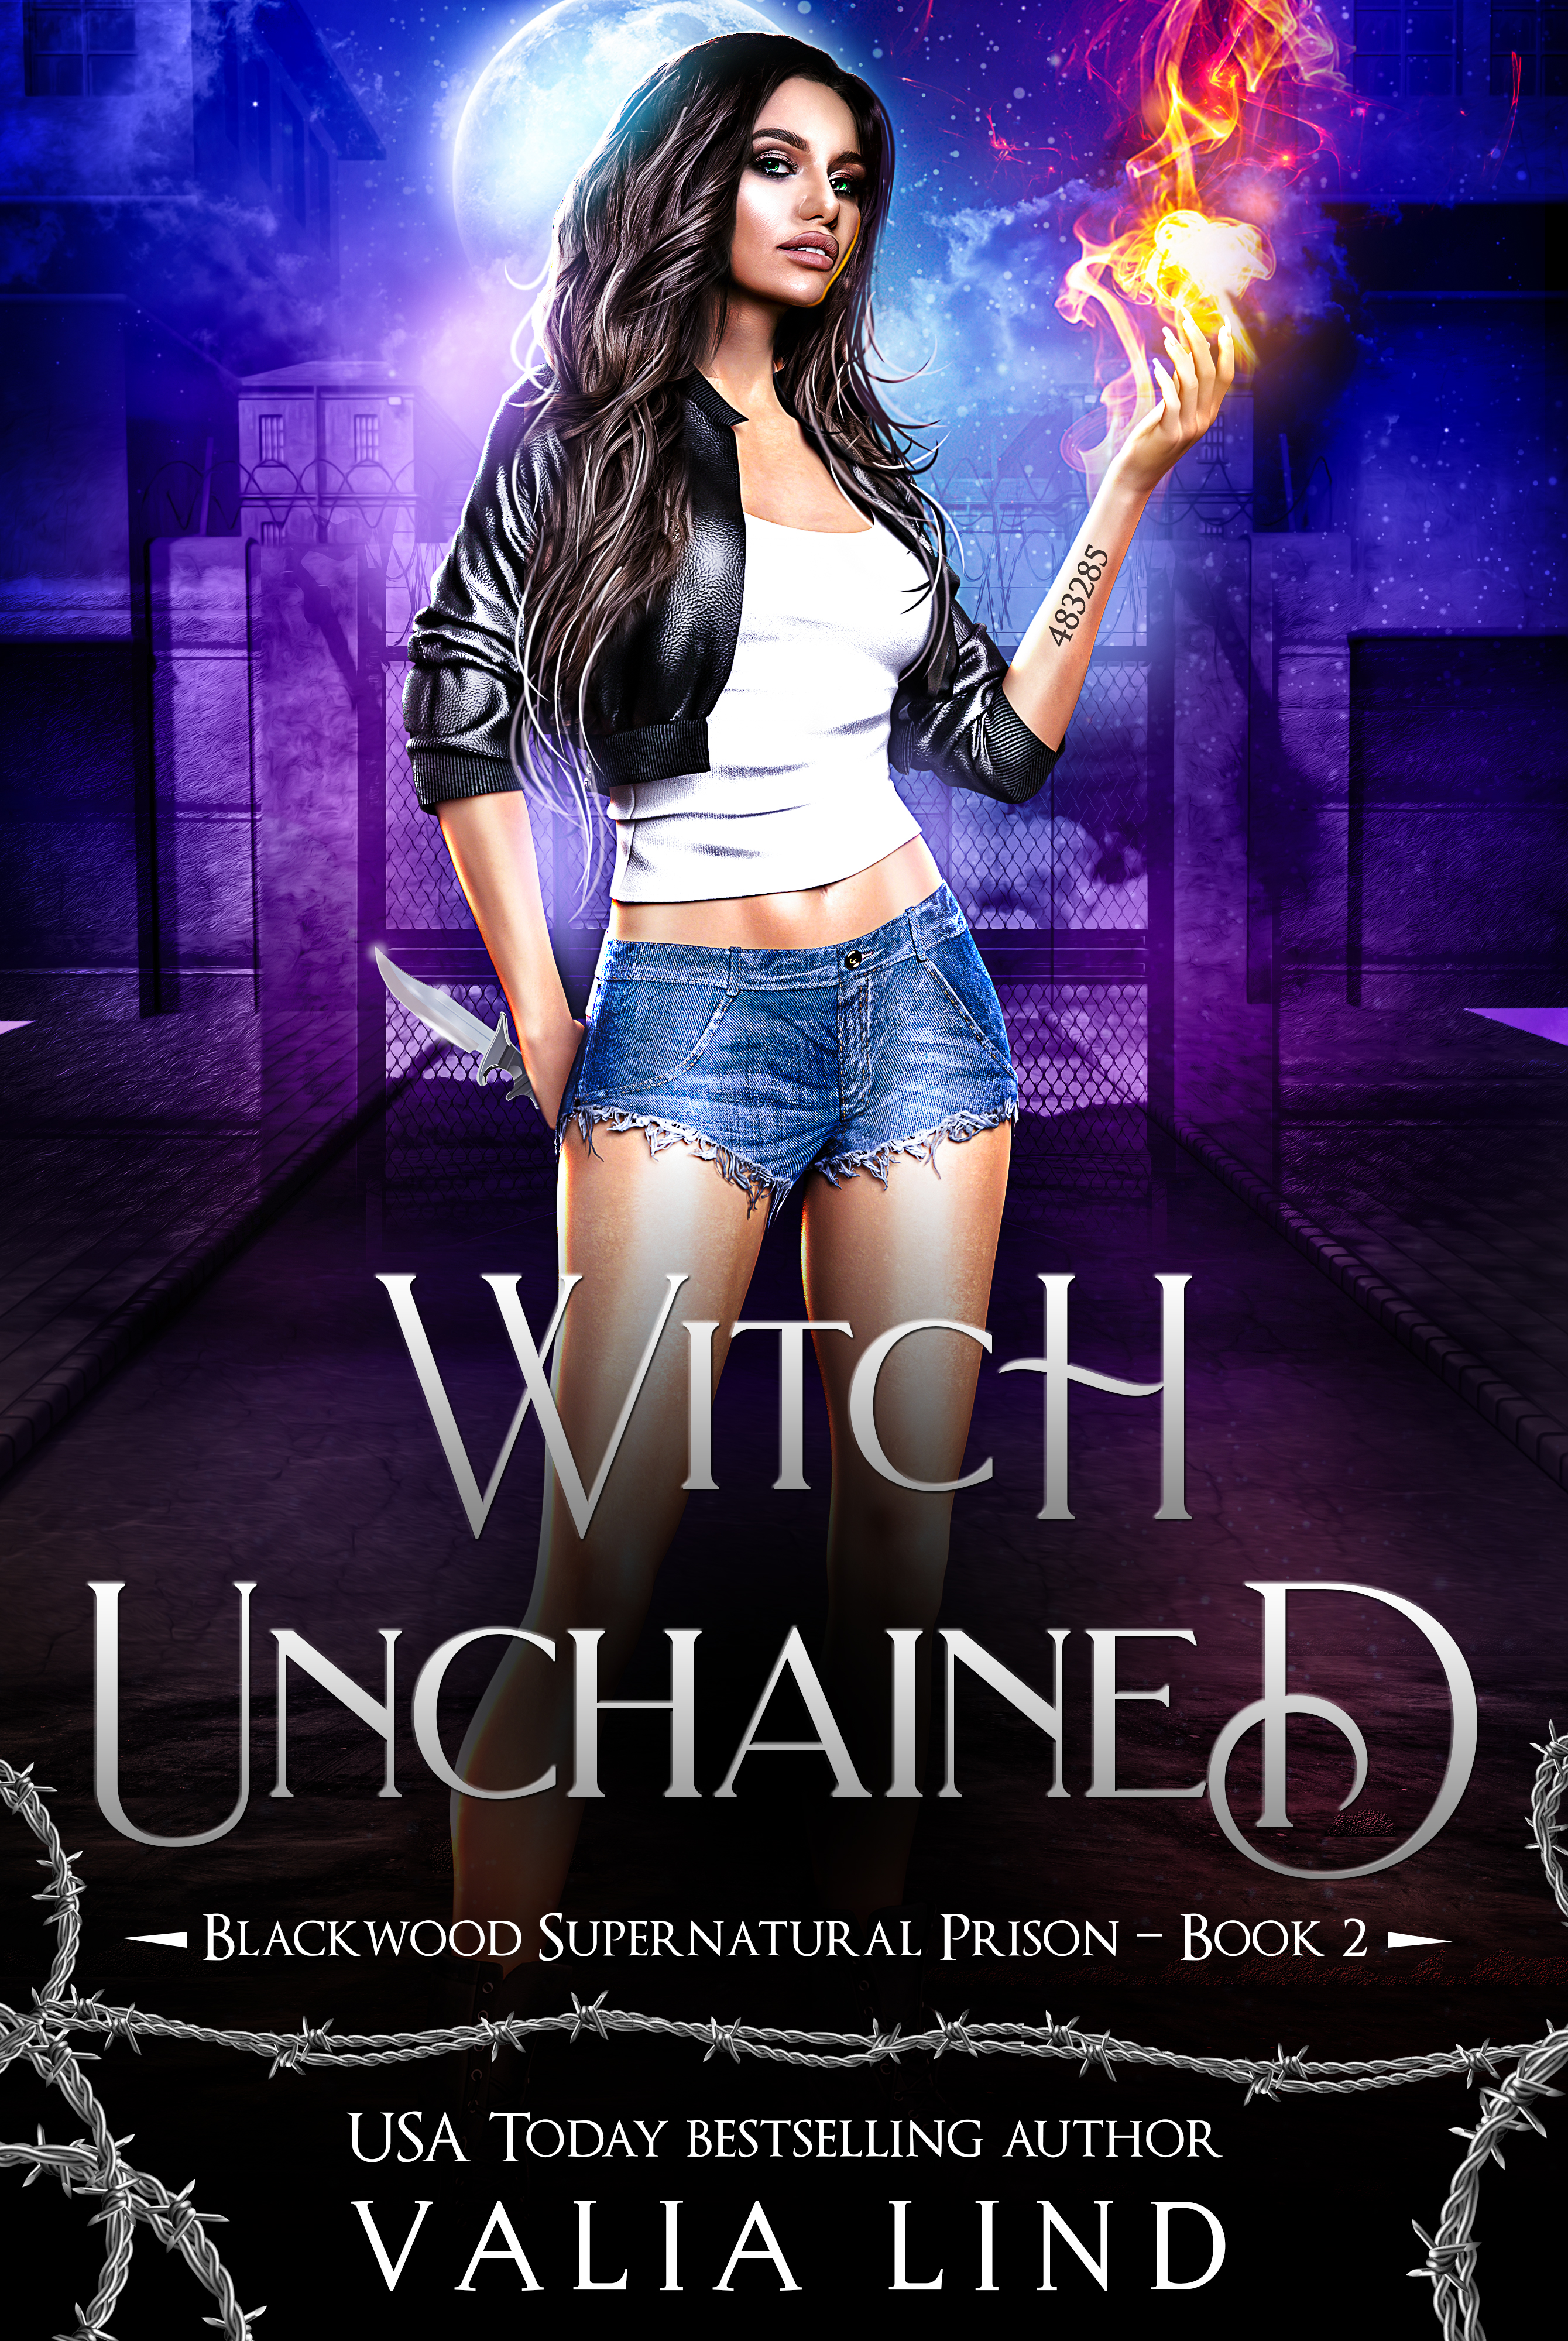 Witch Unchained